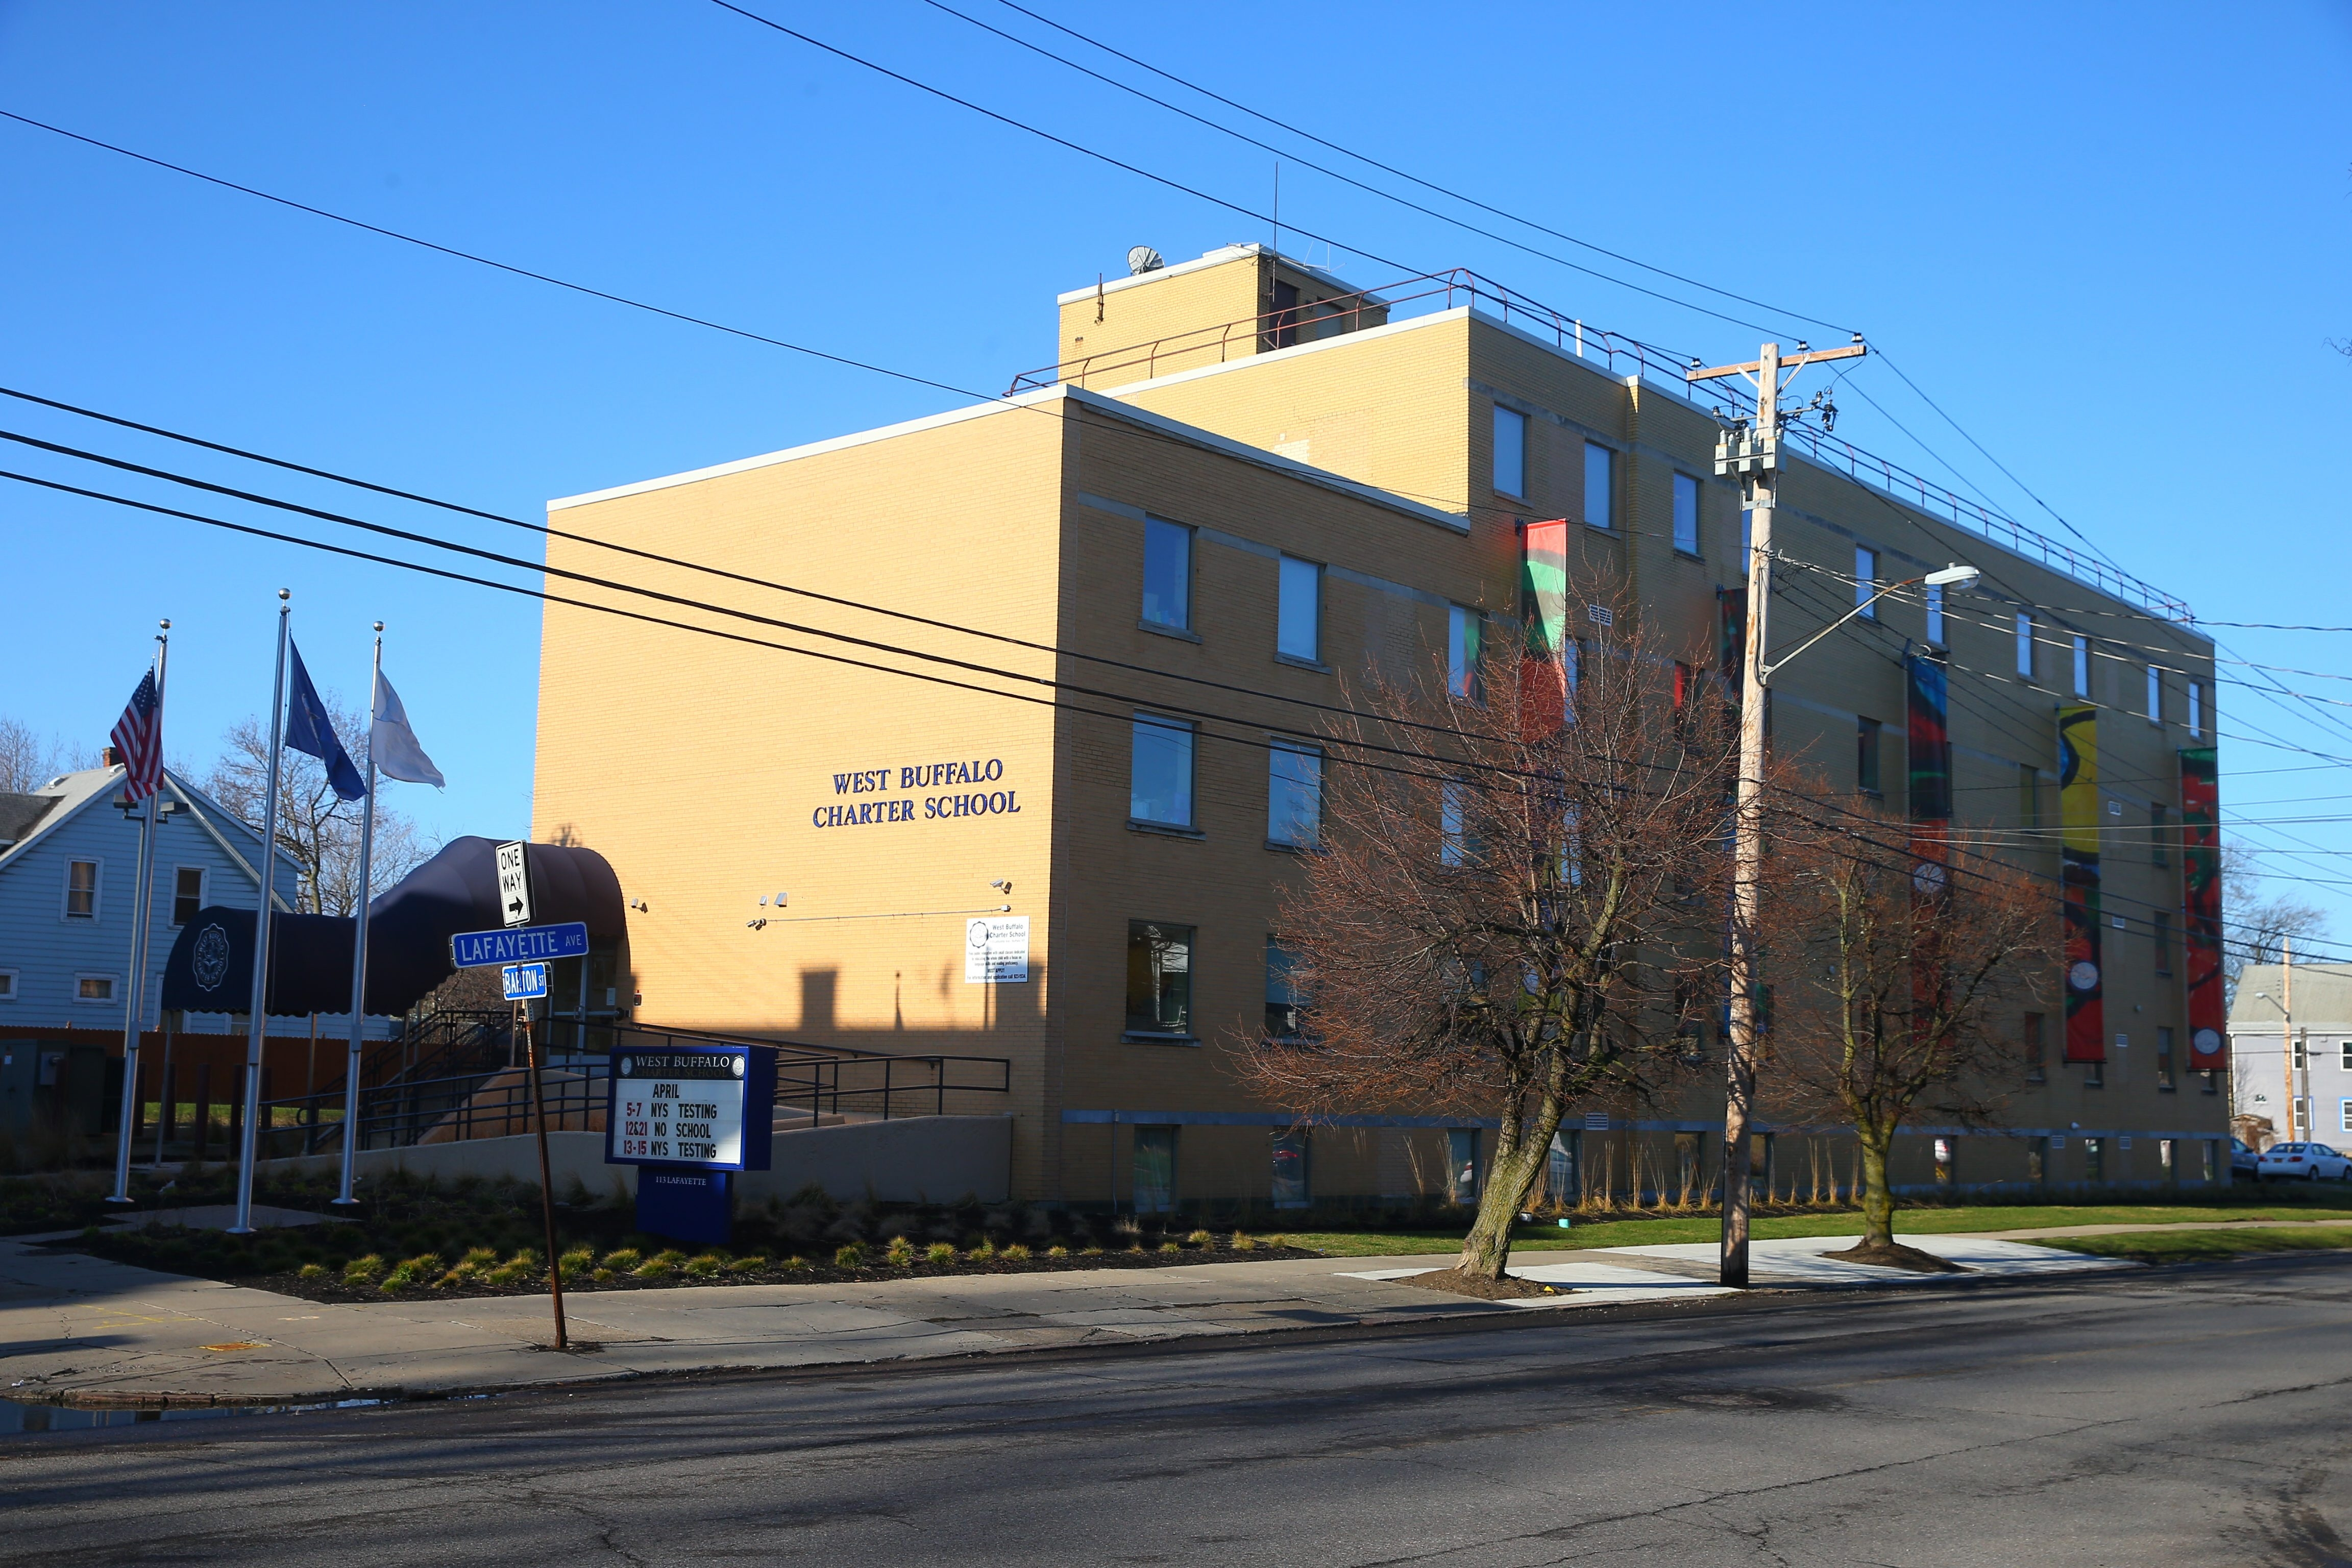 Plans for a pair of expansions at West Buffalo Charter School, to house 5th to 8th grade classrooms at West Buffalo Charter School, 113 Lafayette Avenue, in Buffalo, N.Y., on Tuesday April 12, 2016.(John Hickey/Buffalo News) #File